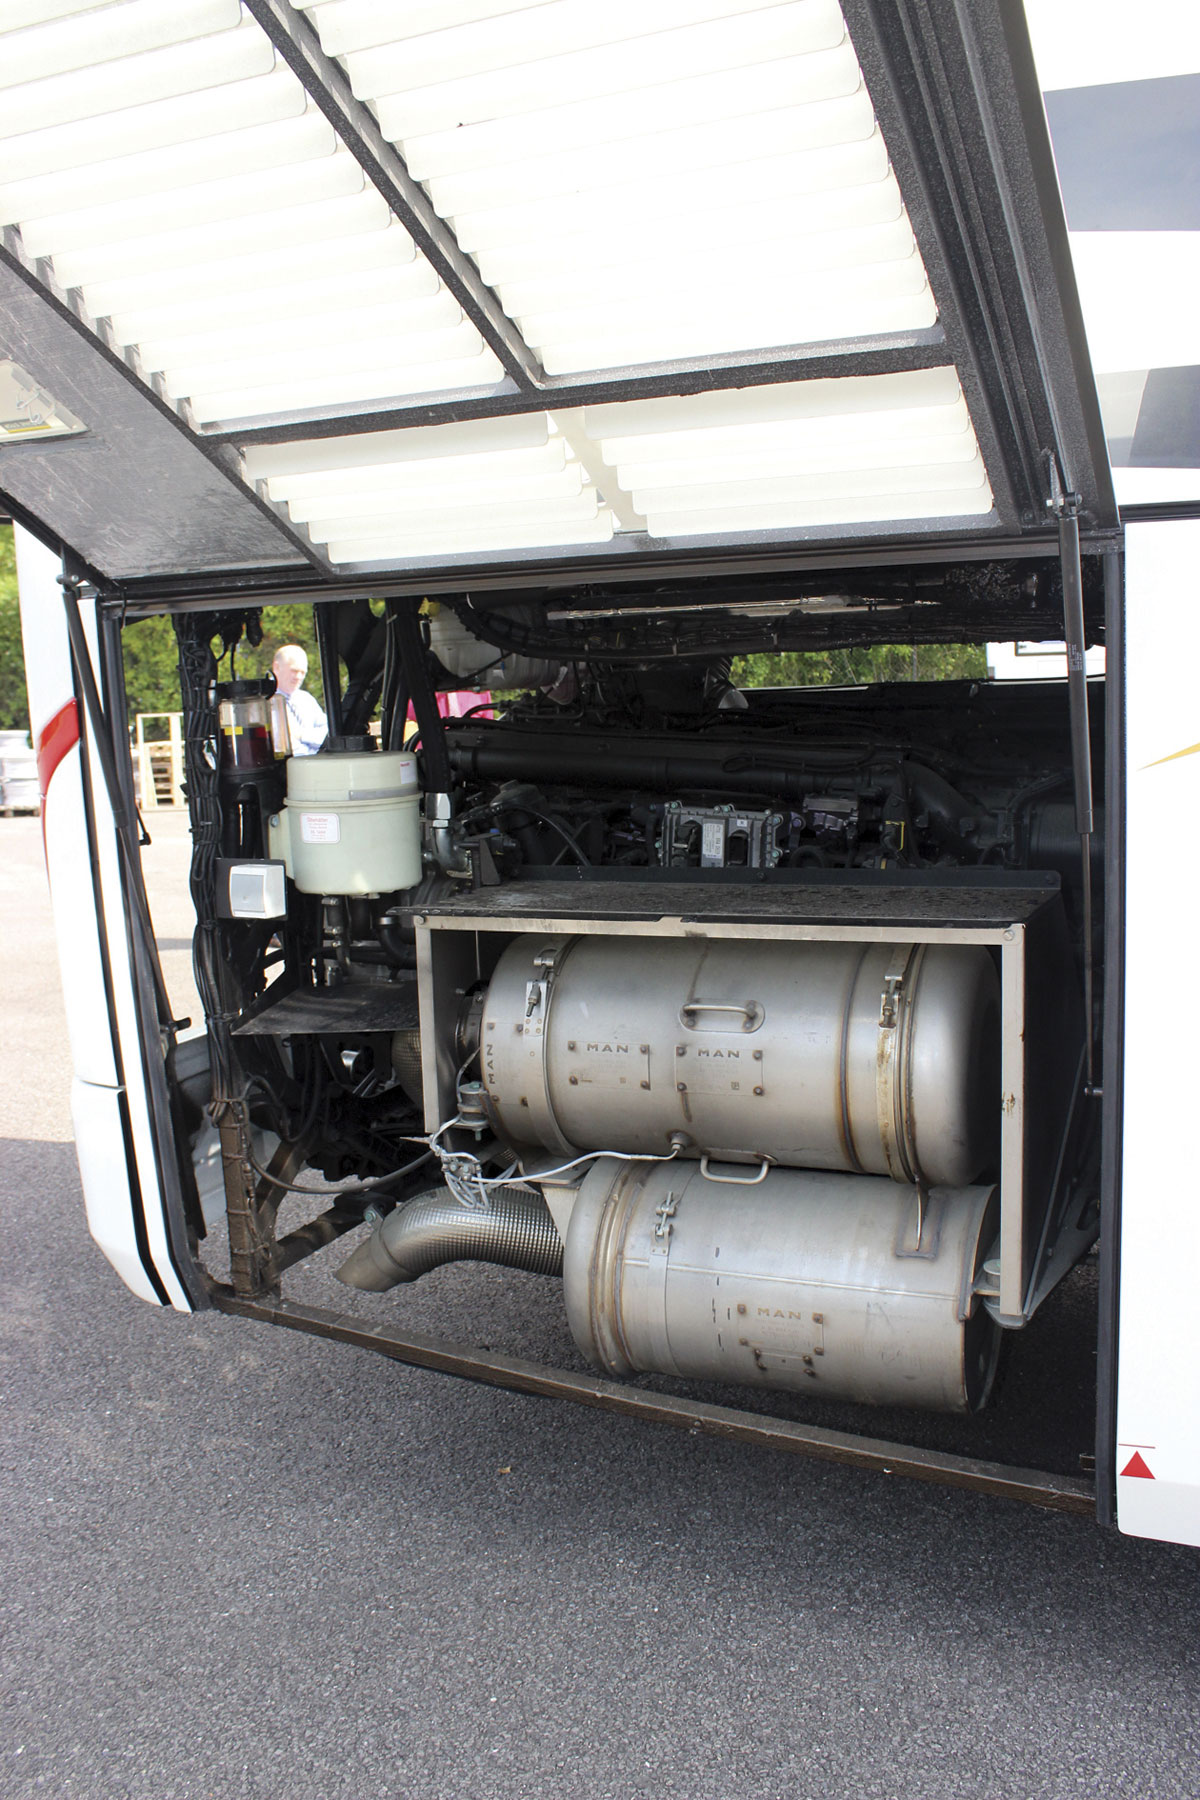 Access to the engine from all directions is exceptional for a Euro6 powered coach. In the foreground is the SCR emissions equipment necessary in addition to the EGR used at Euro5